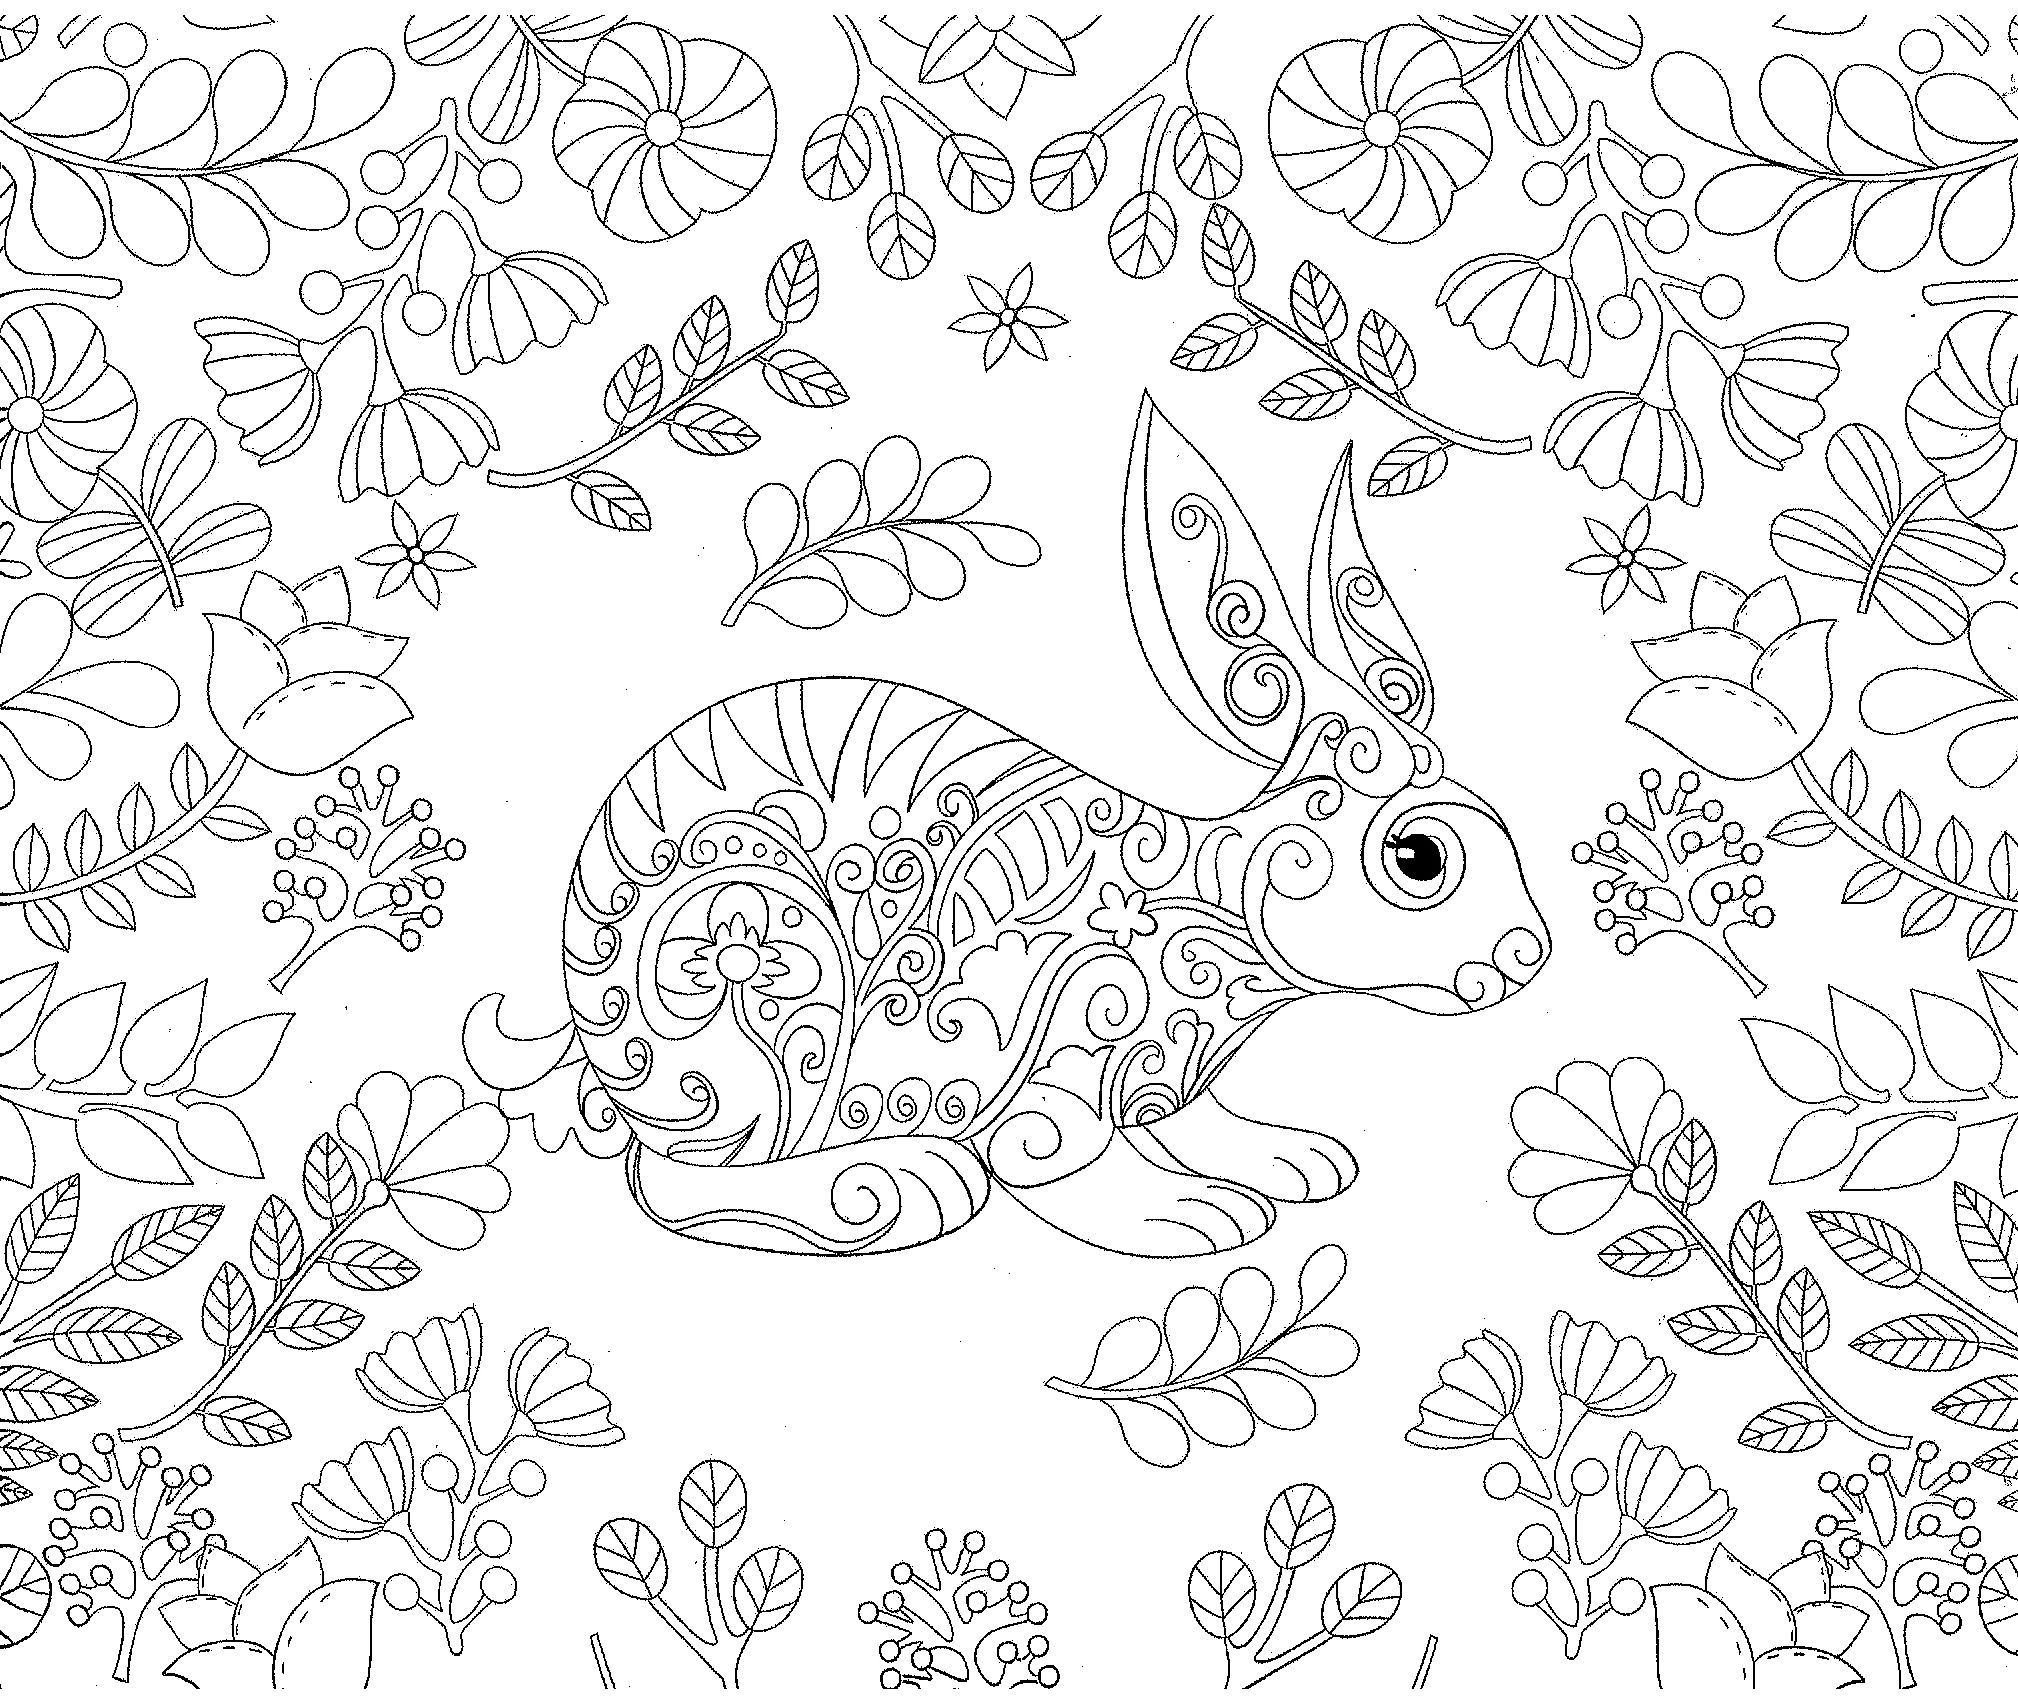 Pin On Coloring Pages Coloriage Livros De Colorir Adult Stress